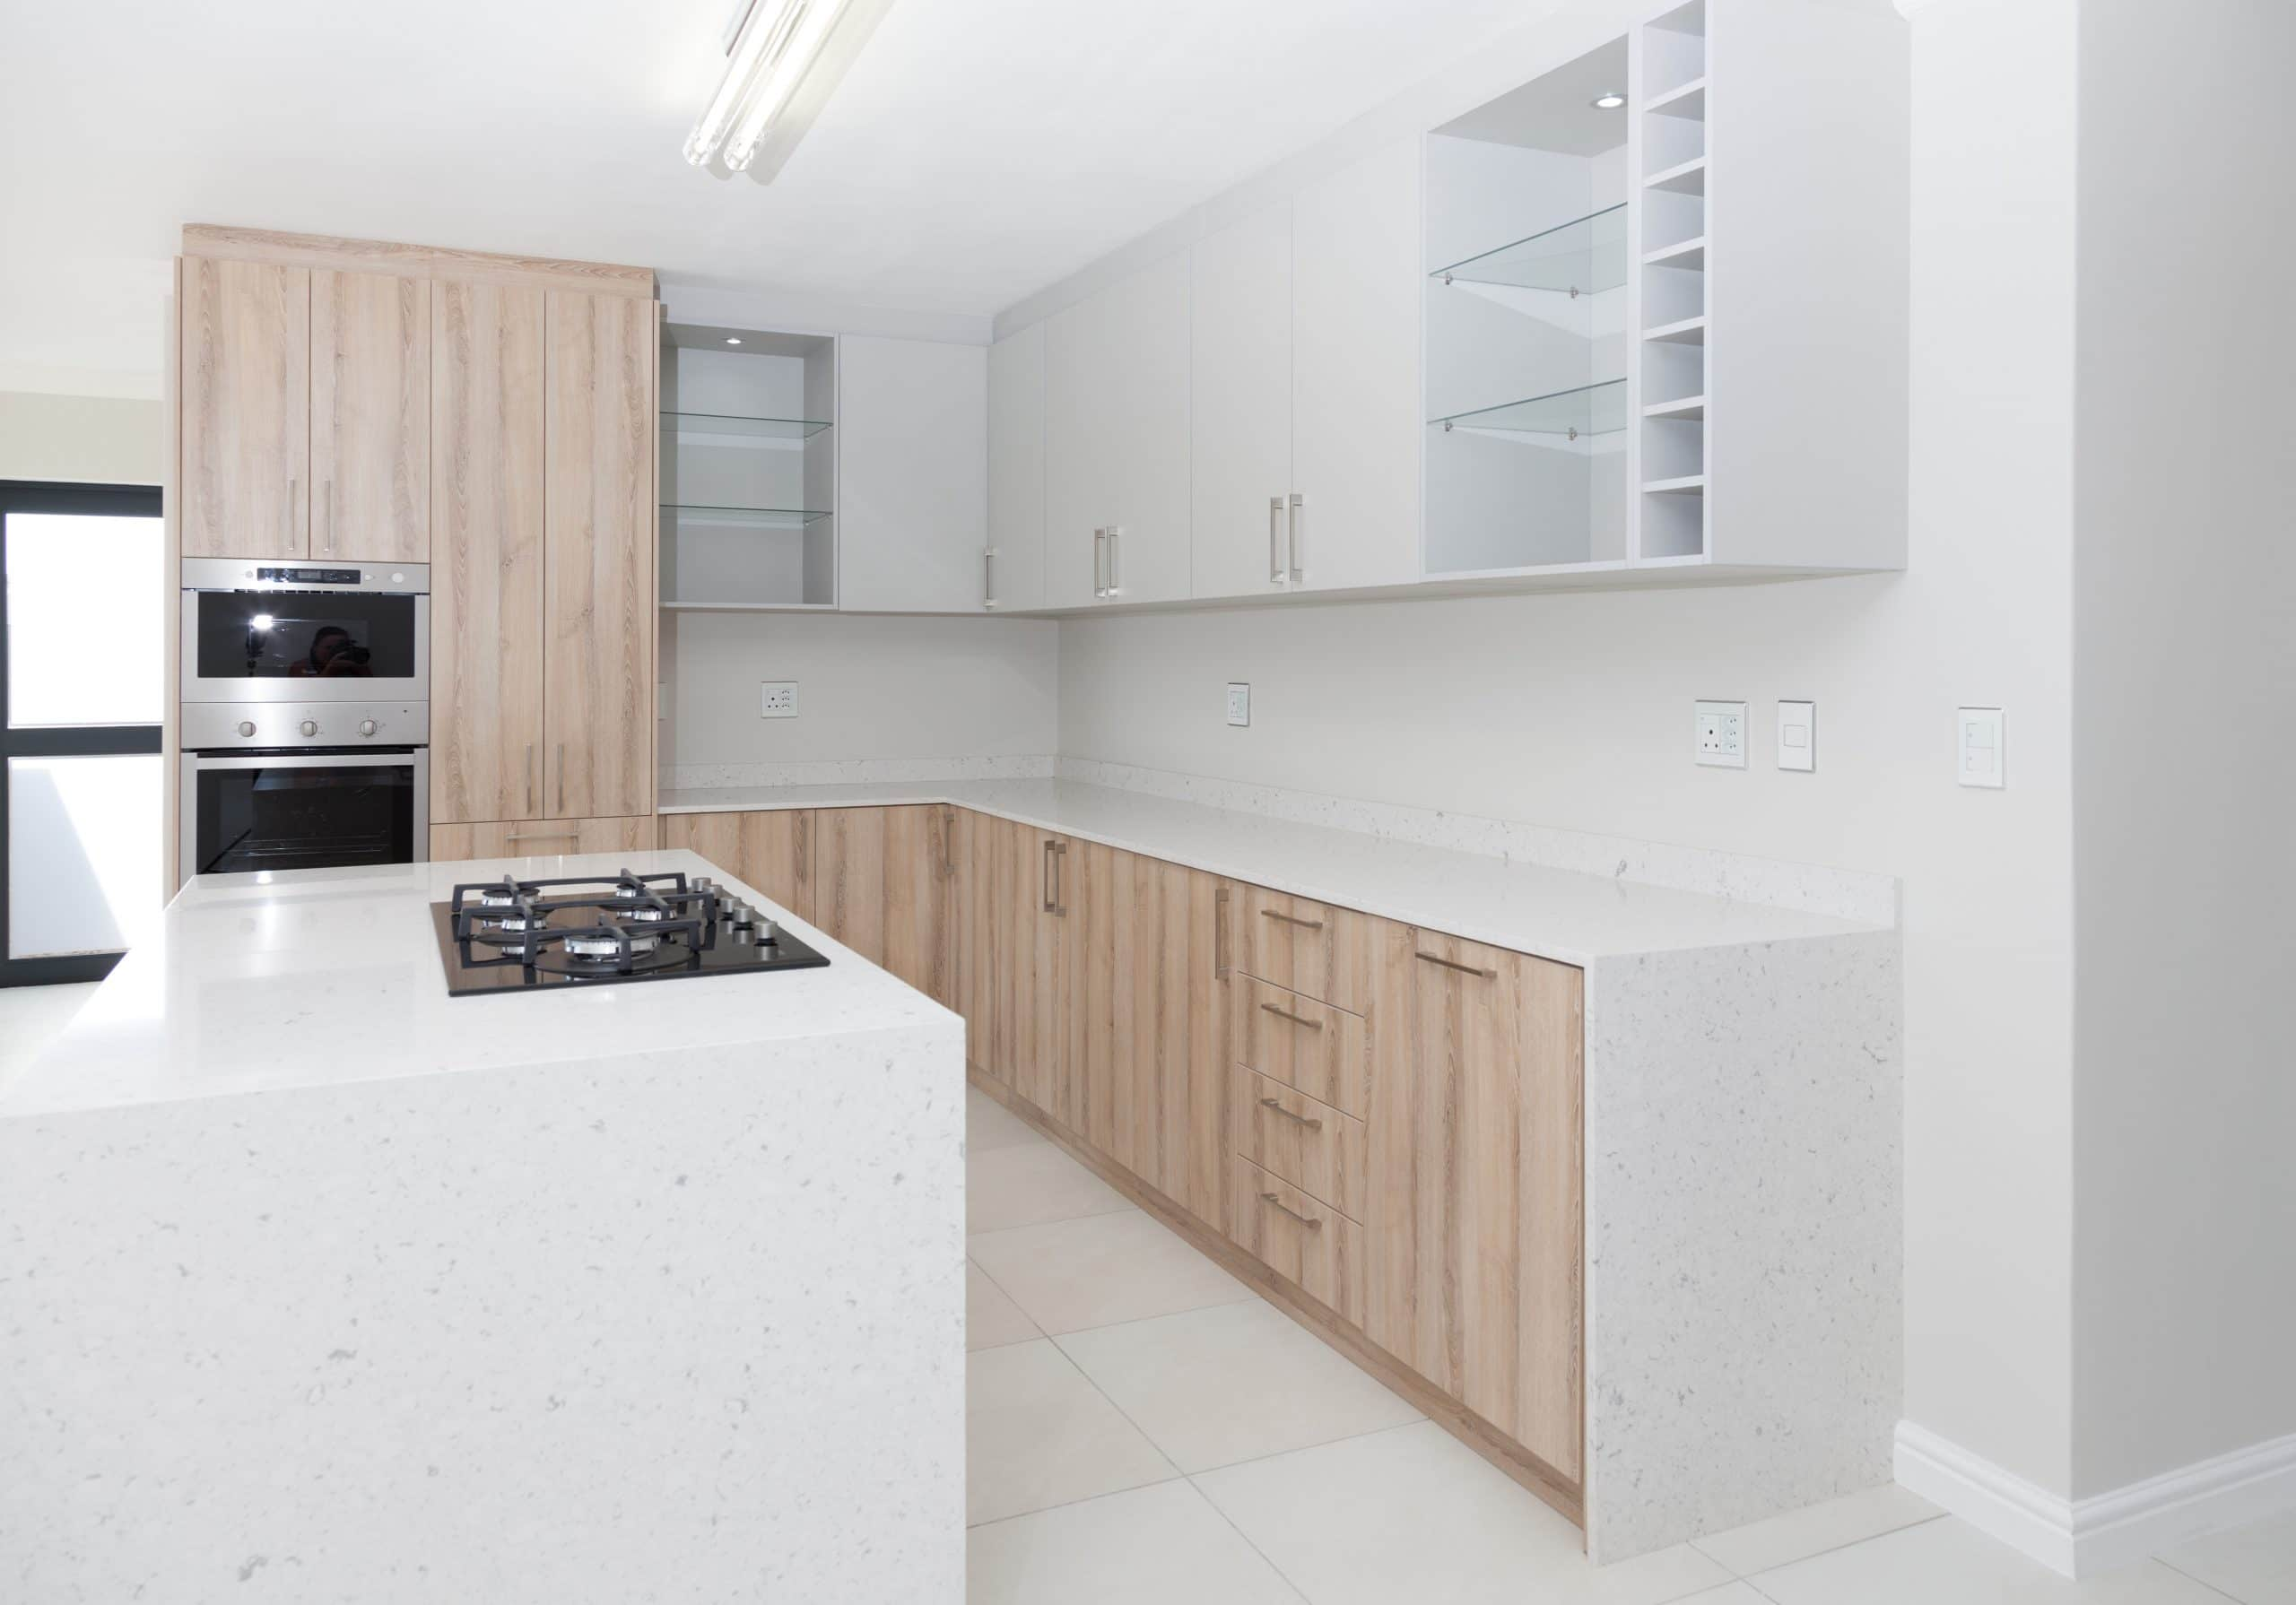 grey kitchen and eye level oven and glass shelves